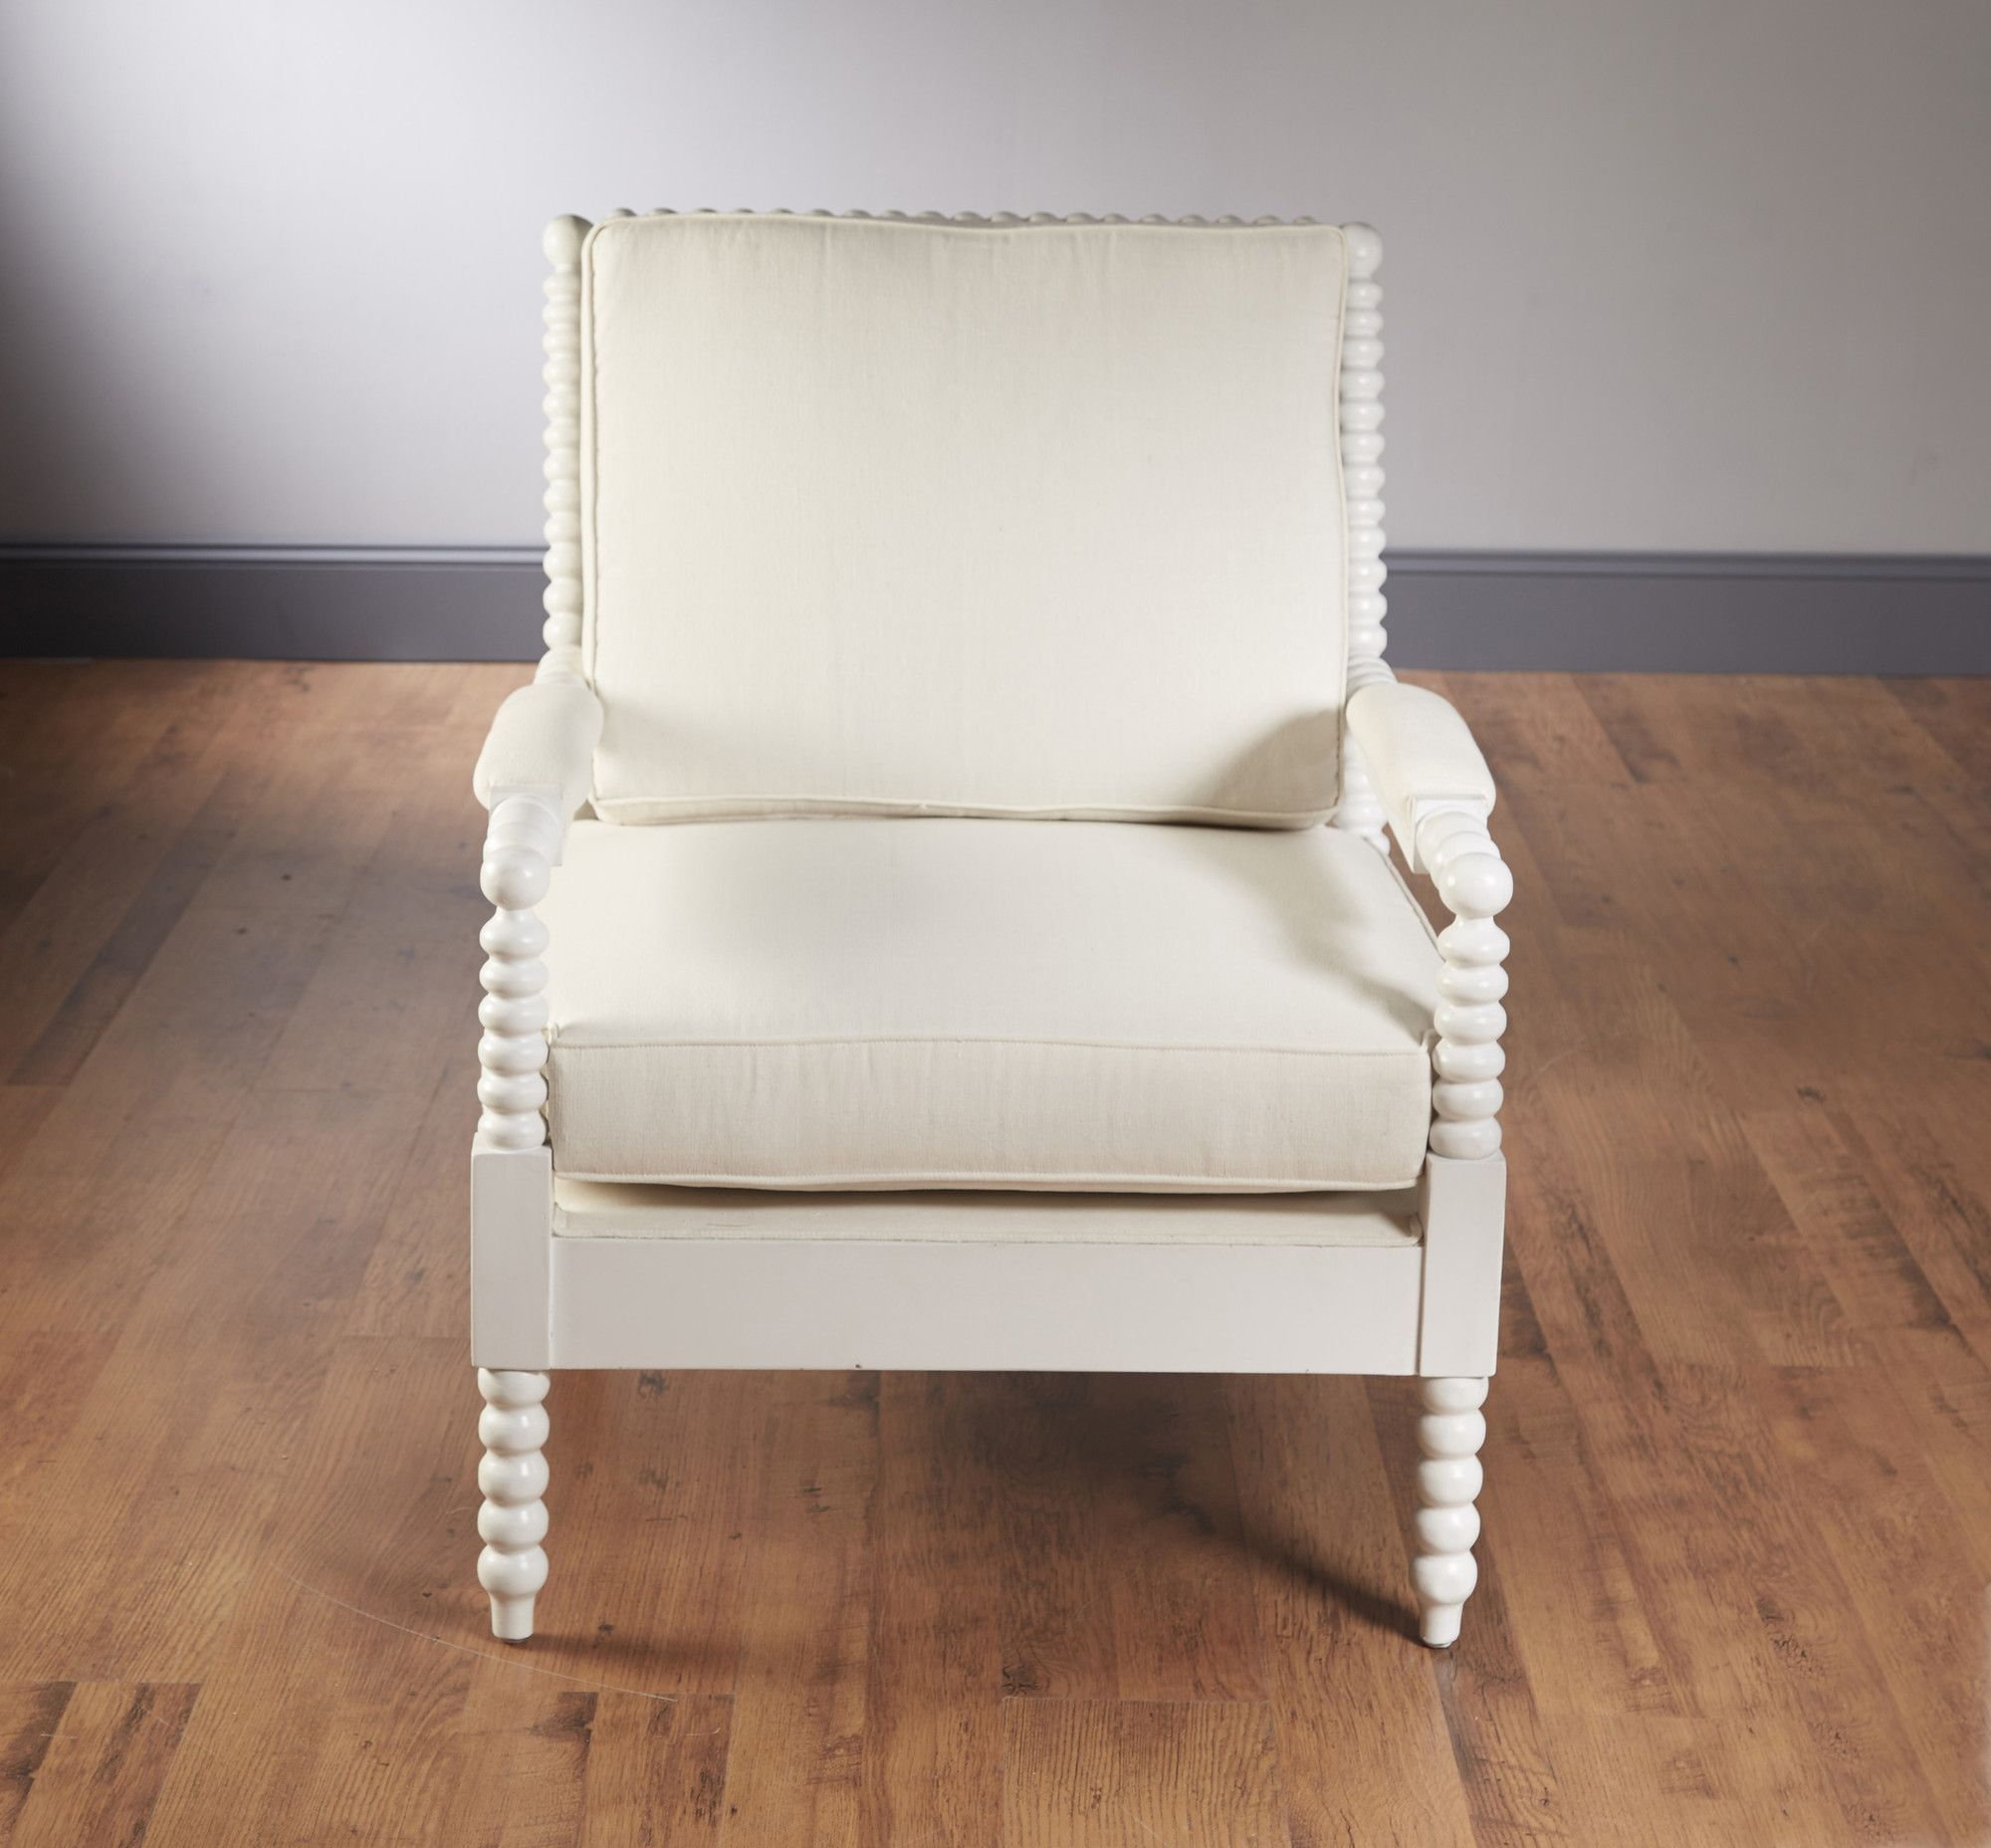 AA Importing Bobbin Frame Arm Chair White leather dining